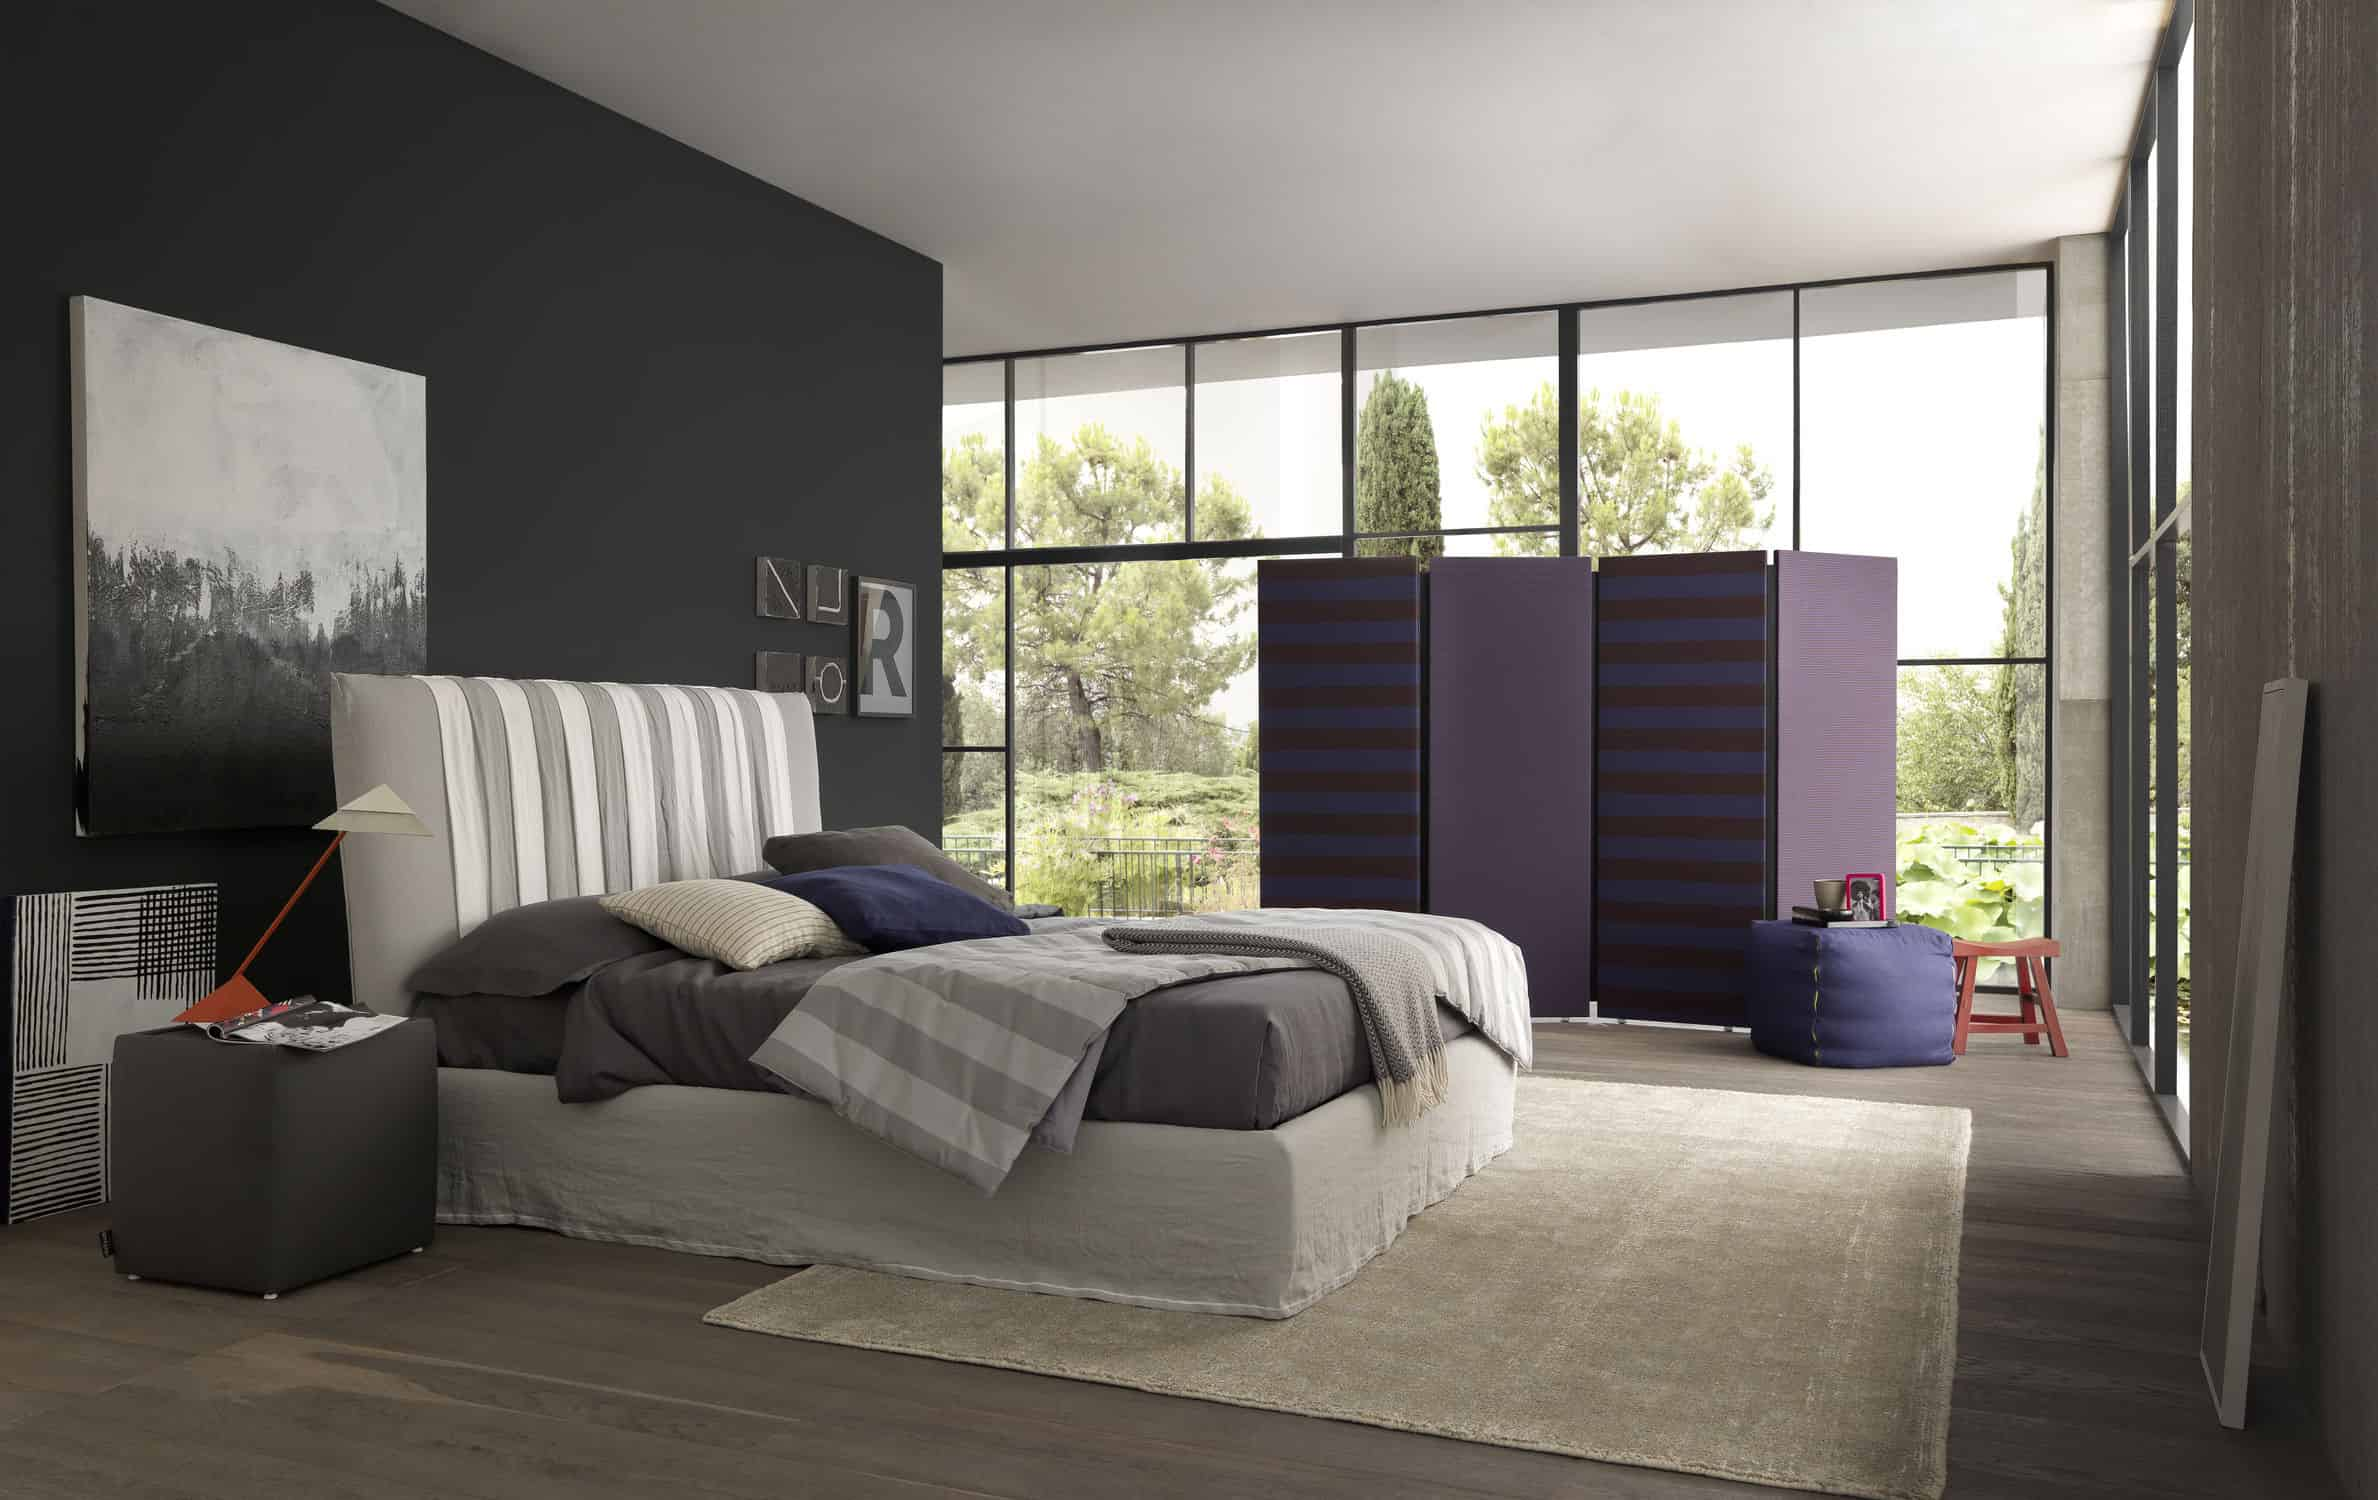 50 modern bedroom design ideas for Bedroom designs uk